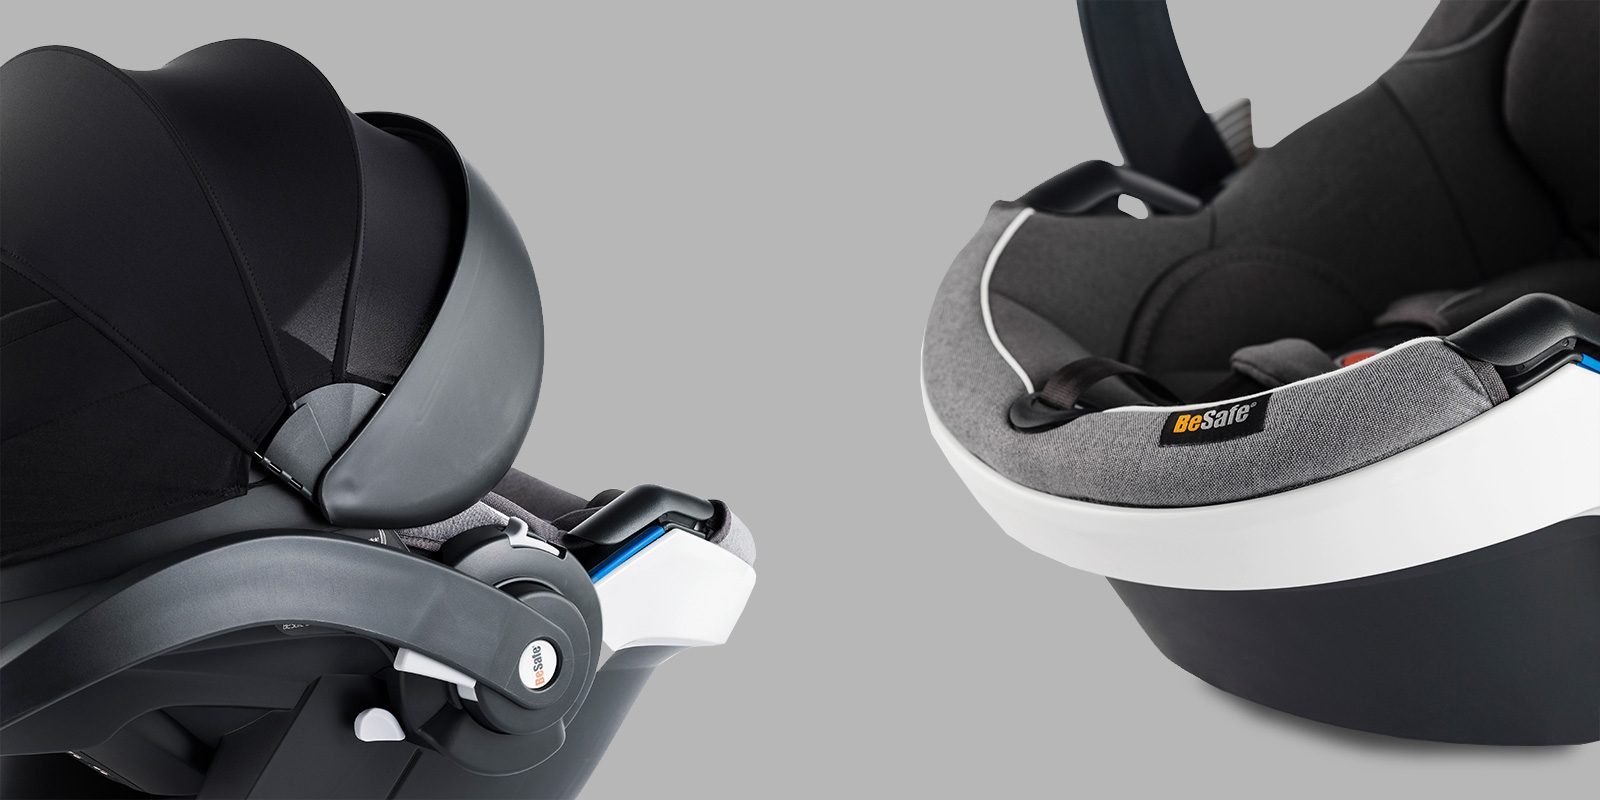 Win An Award Winning Baby Car Seats In The Newest Design